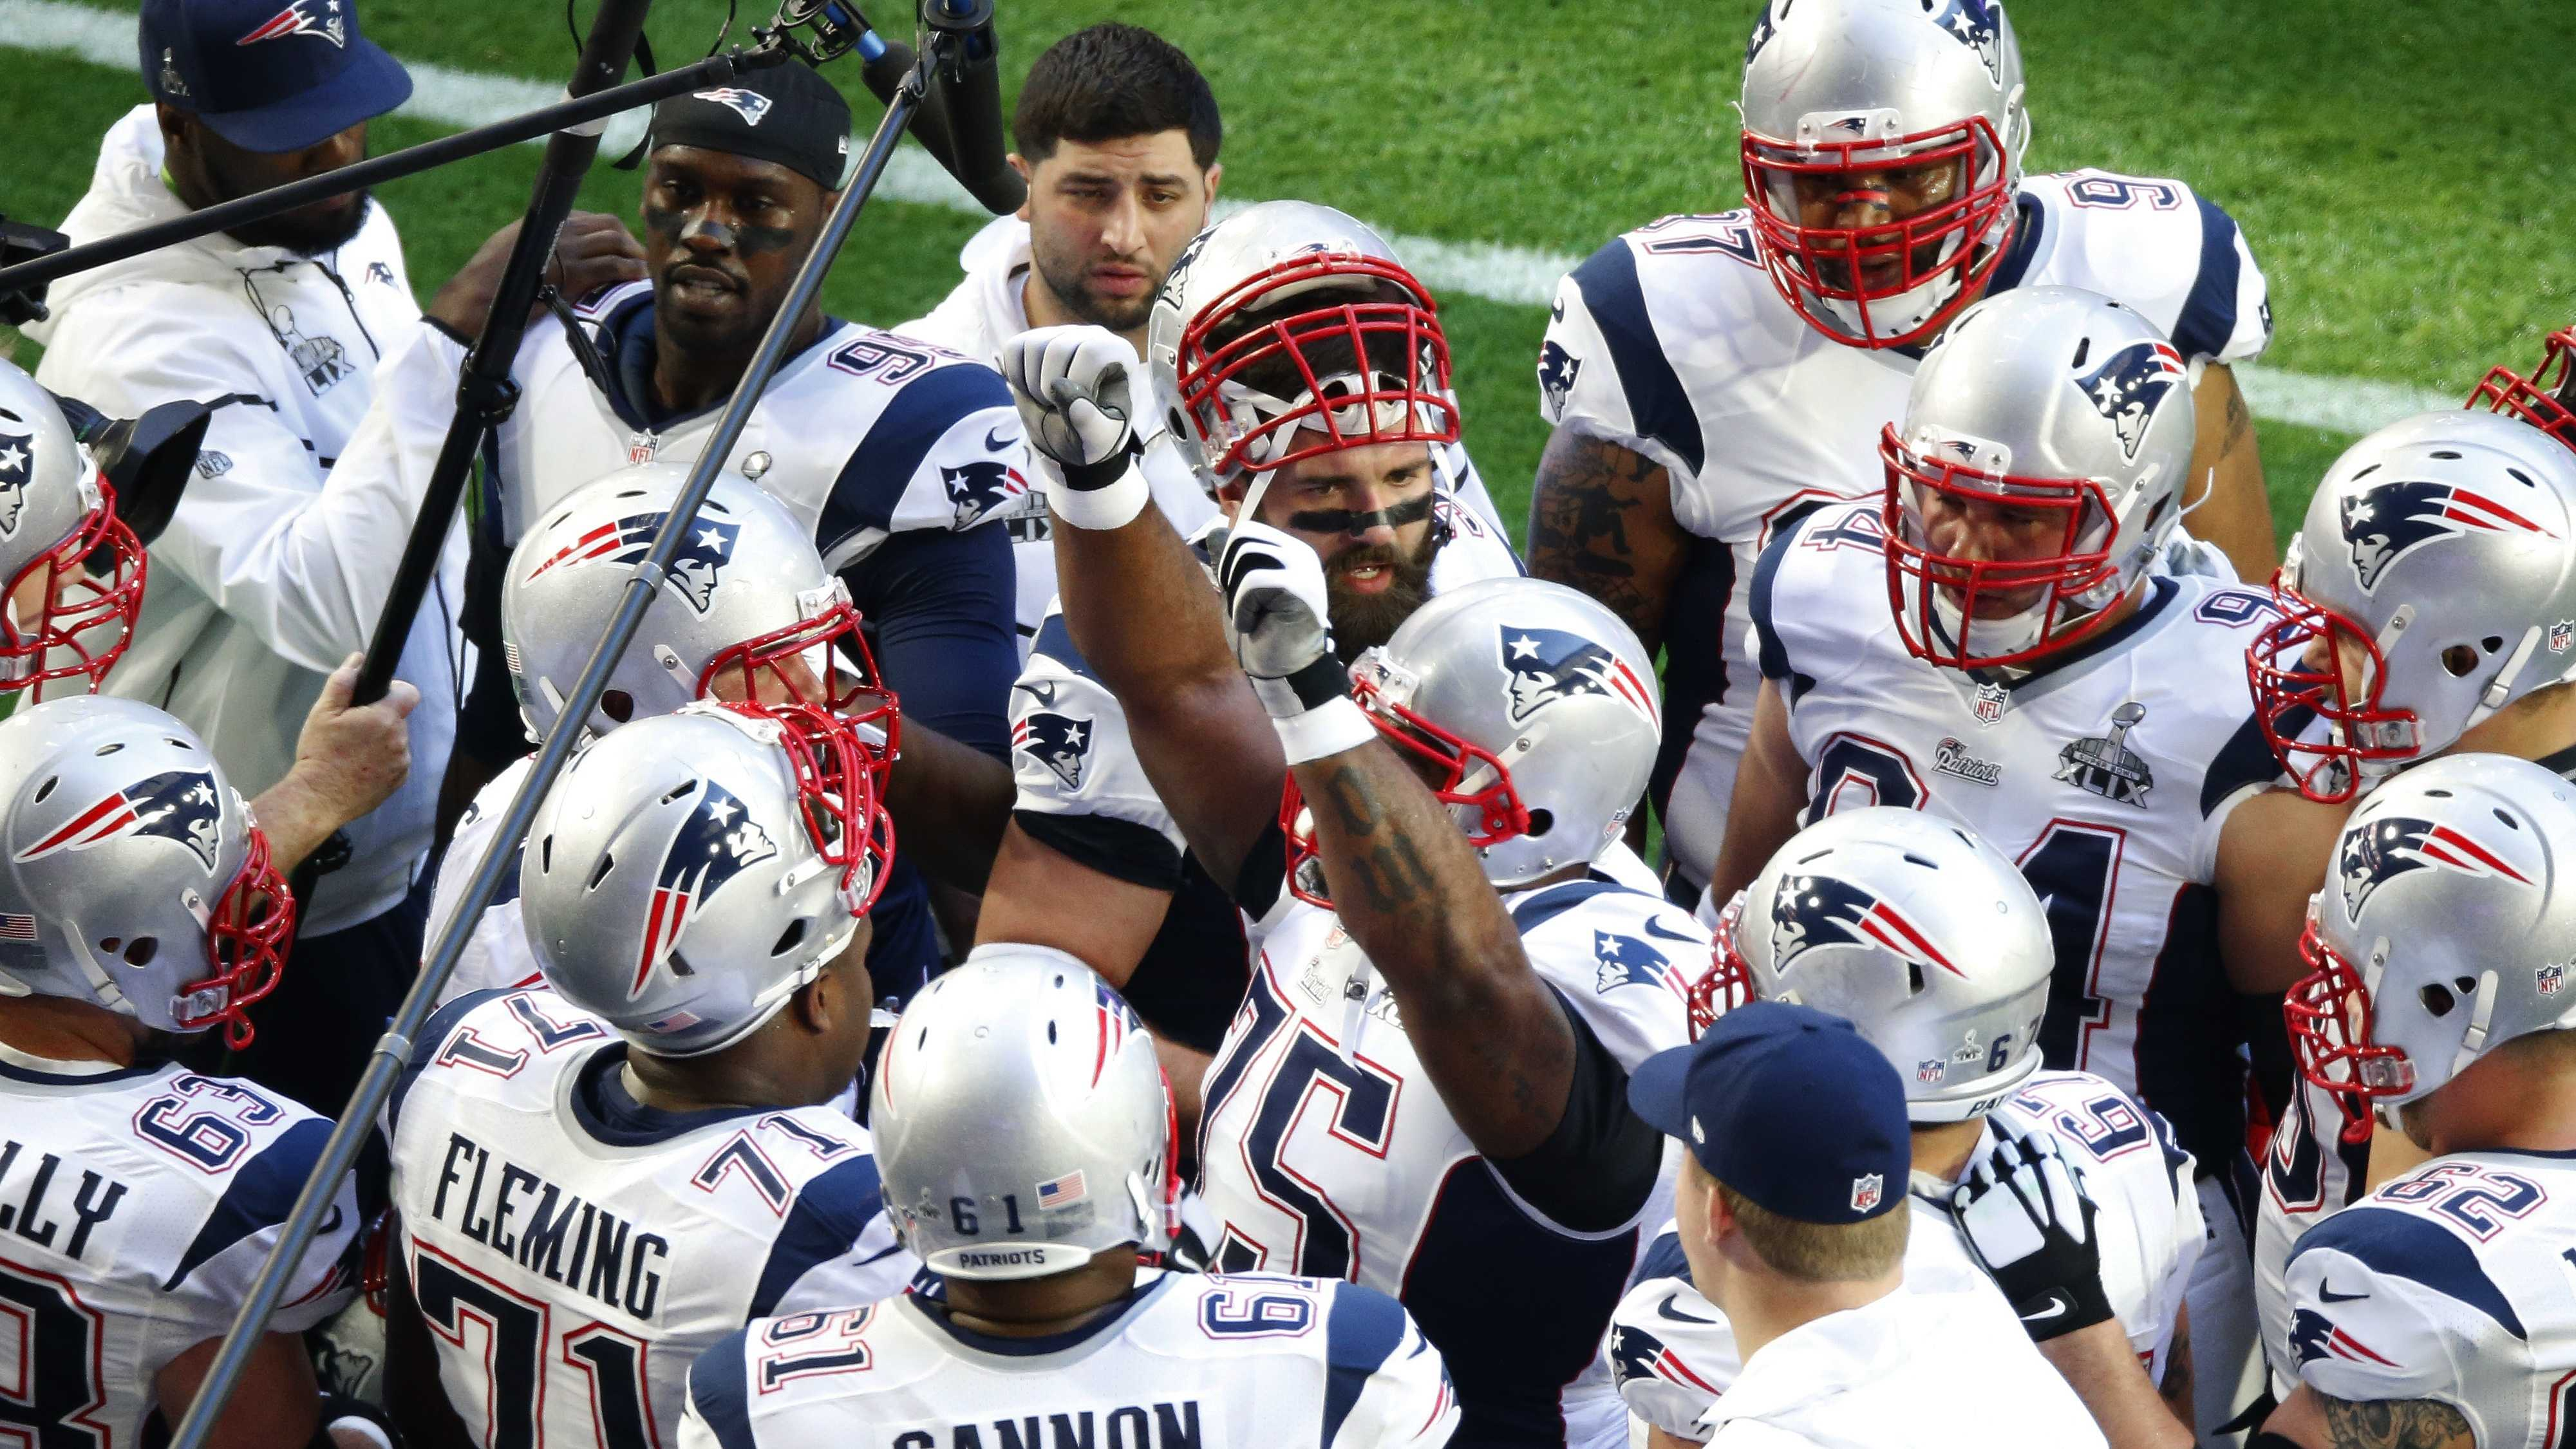 New England Patriots team members huddle before the NFL Super Bowl XLIX football game against the Seattle Seahawks, Sunday, Feb. 1, 2015, in Glendale, Ariz.